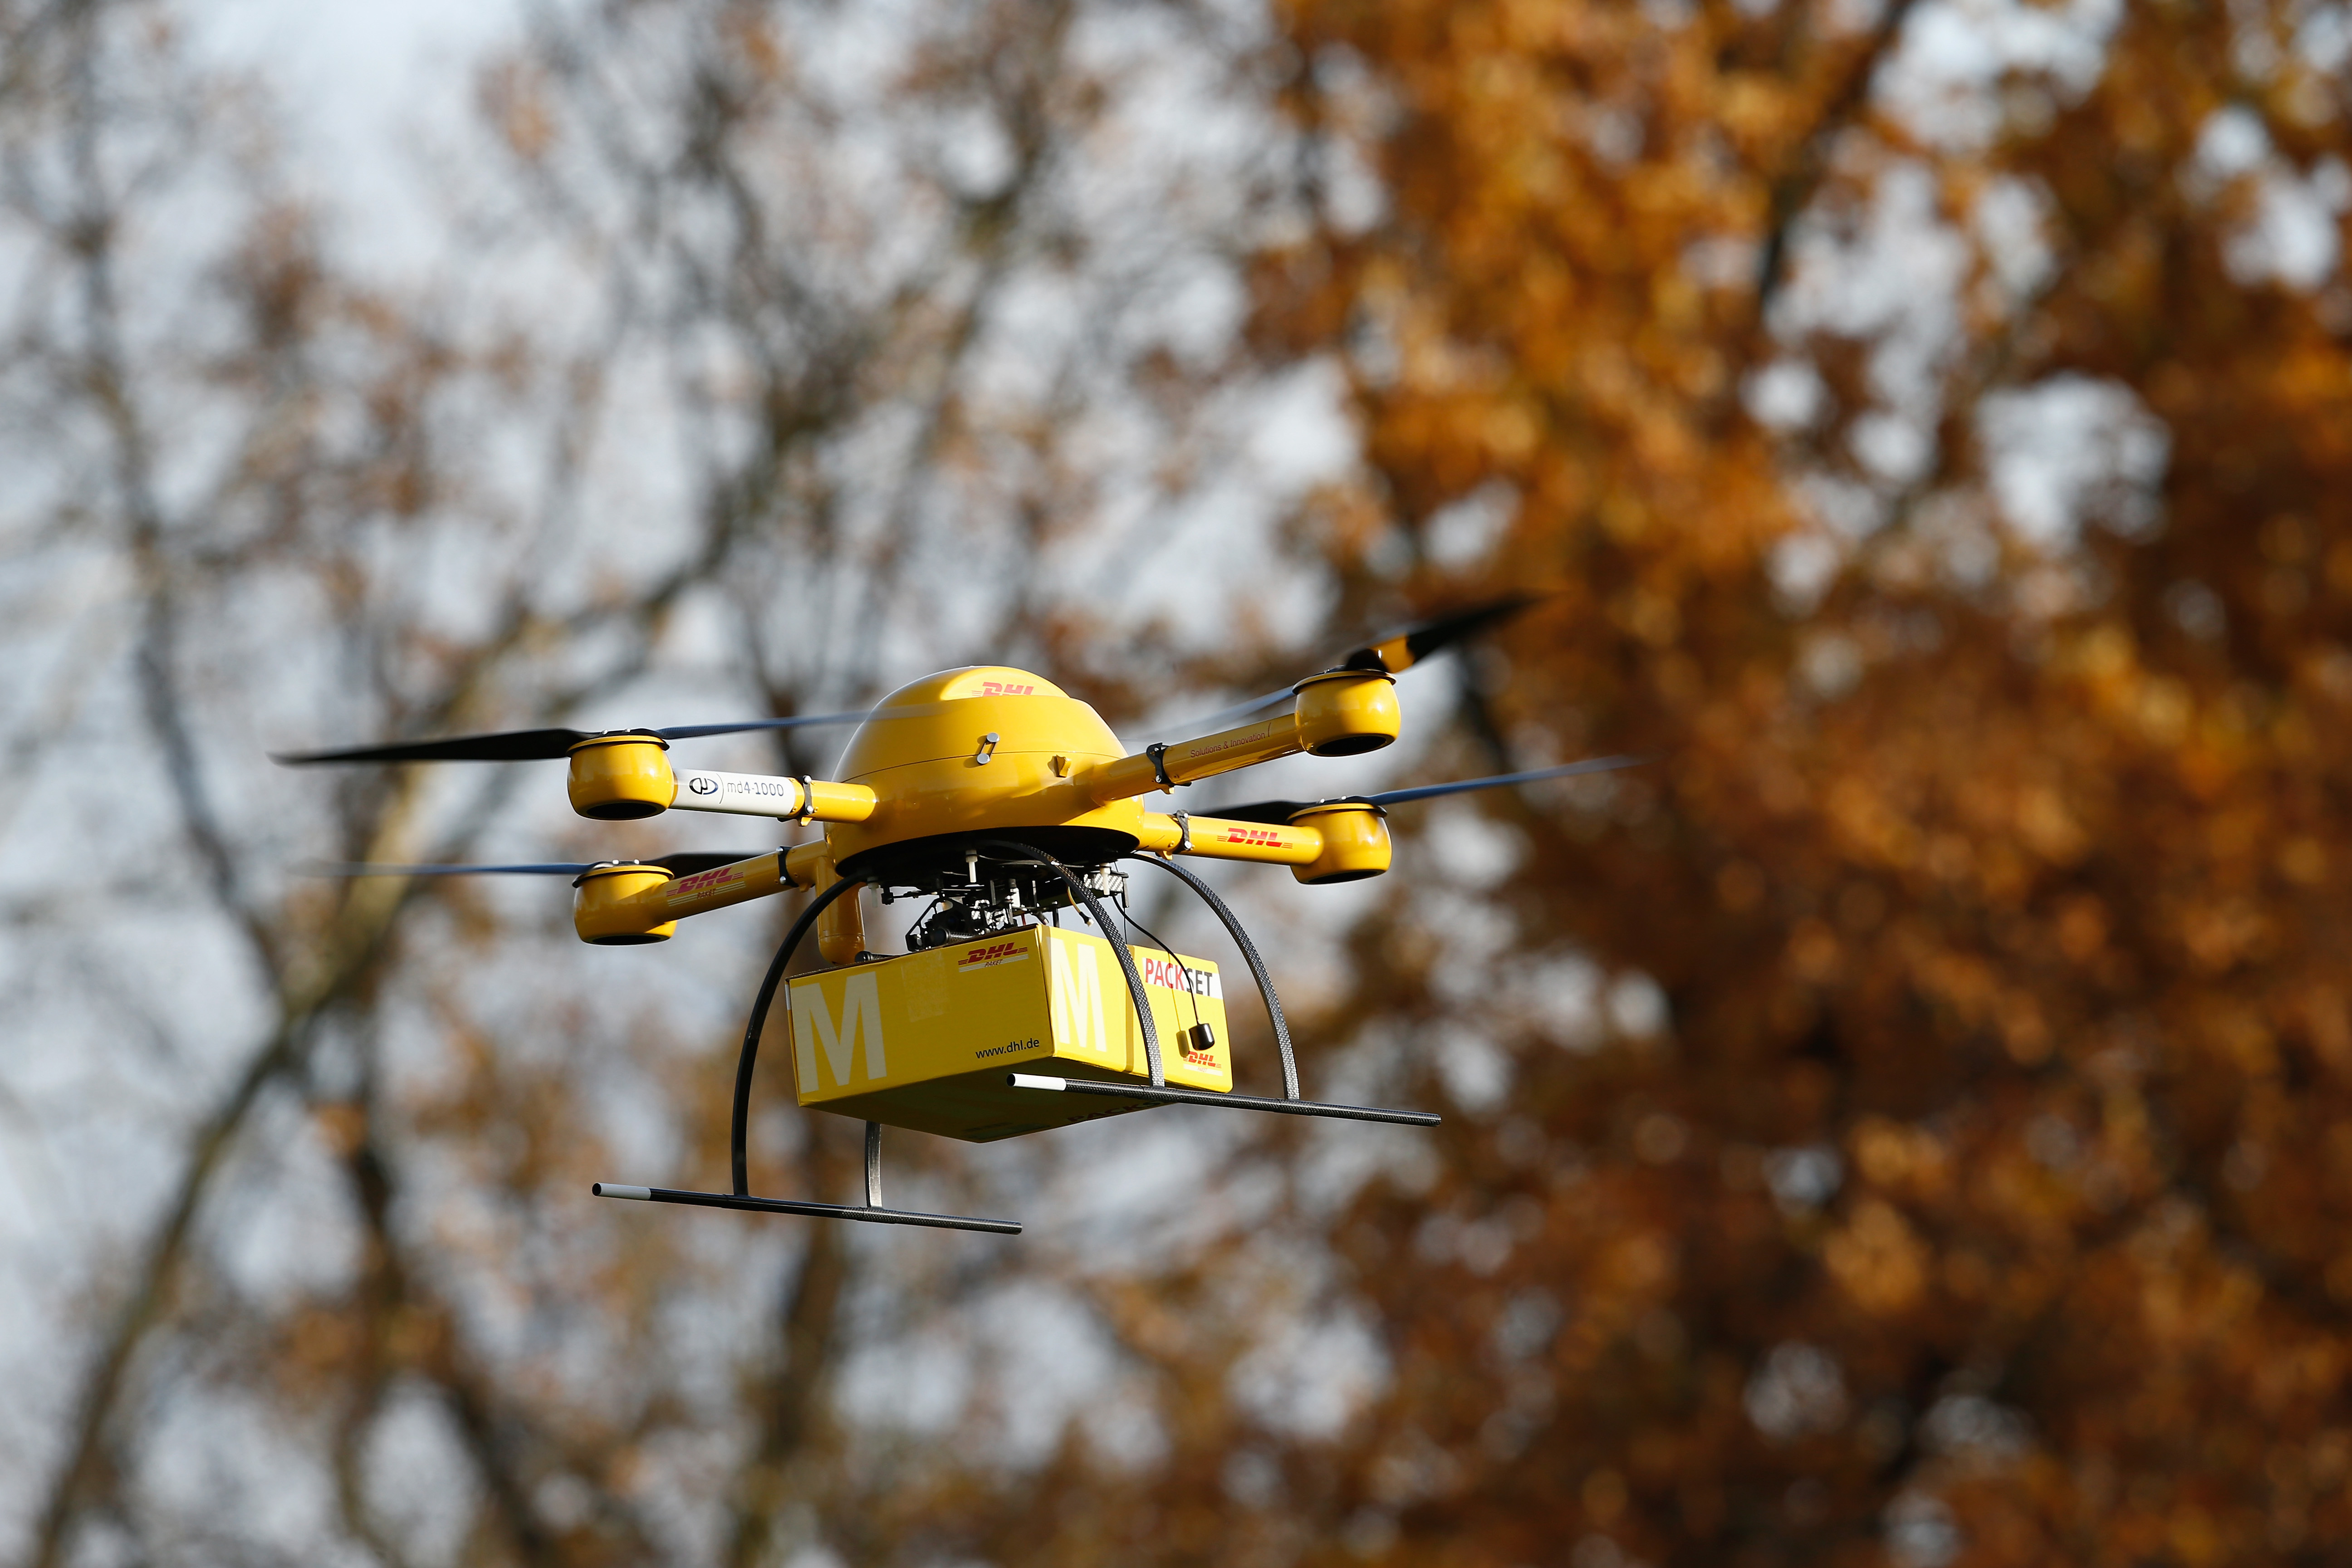 White House: Google will start testing delivery drones in the US